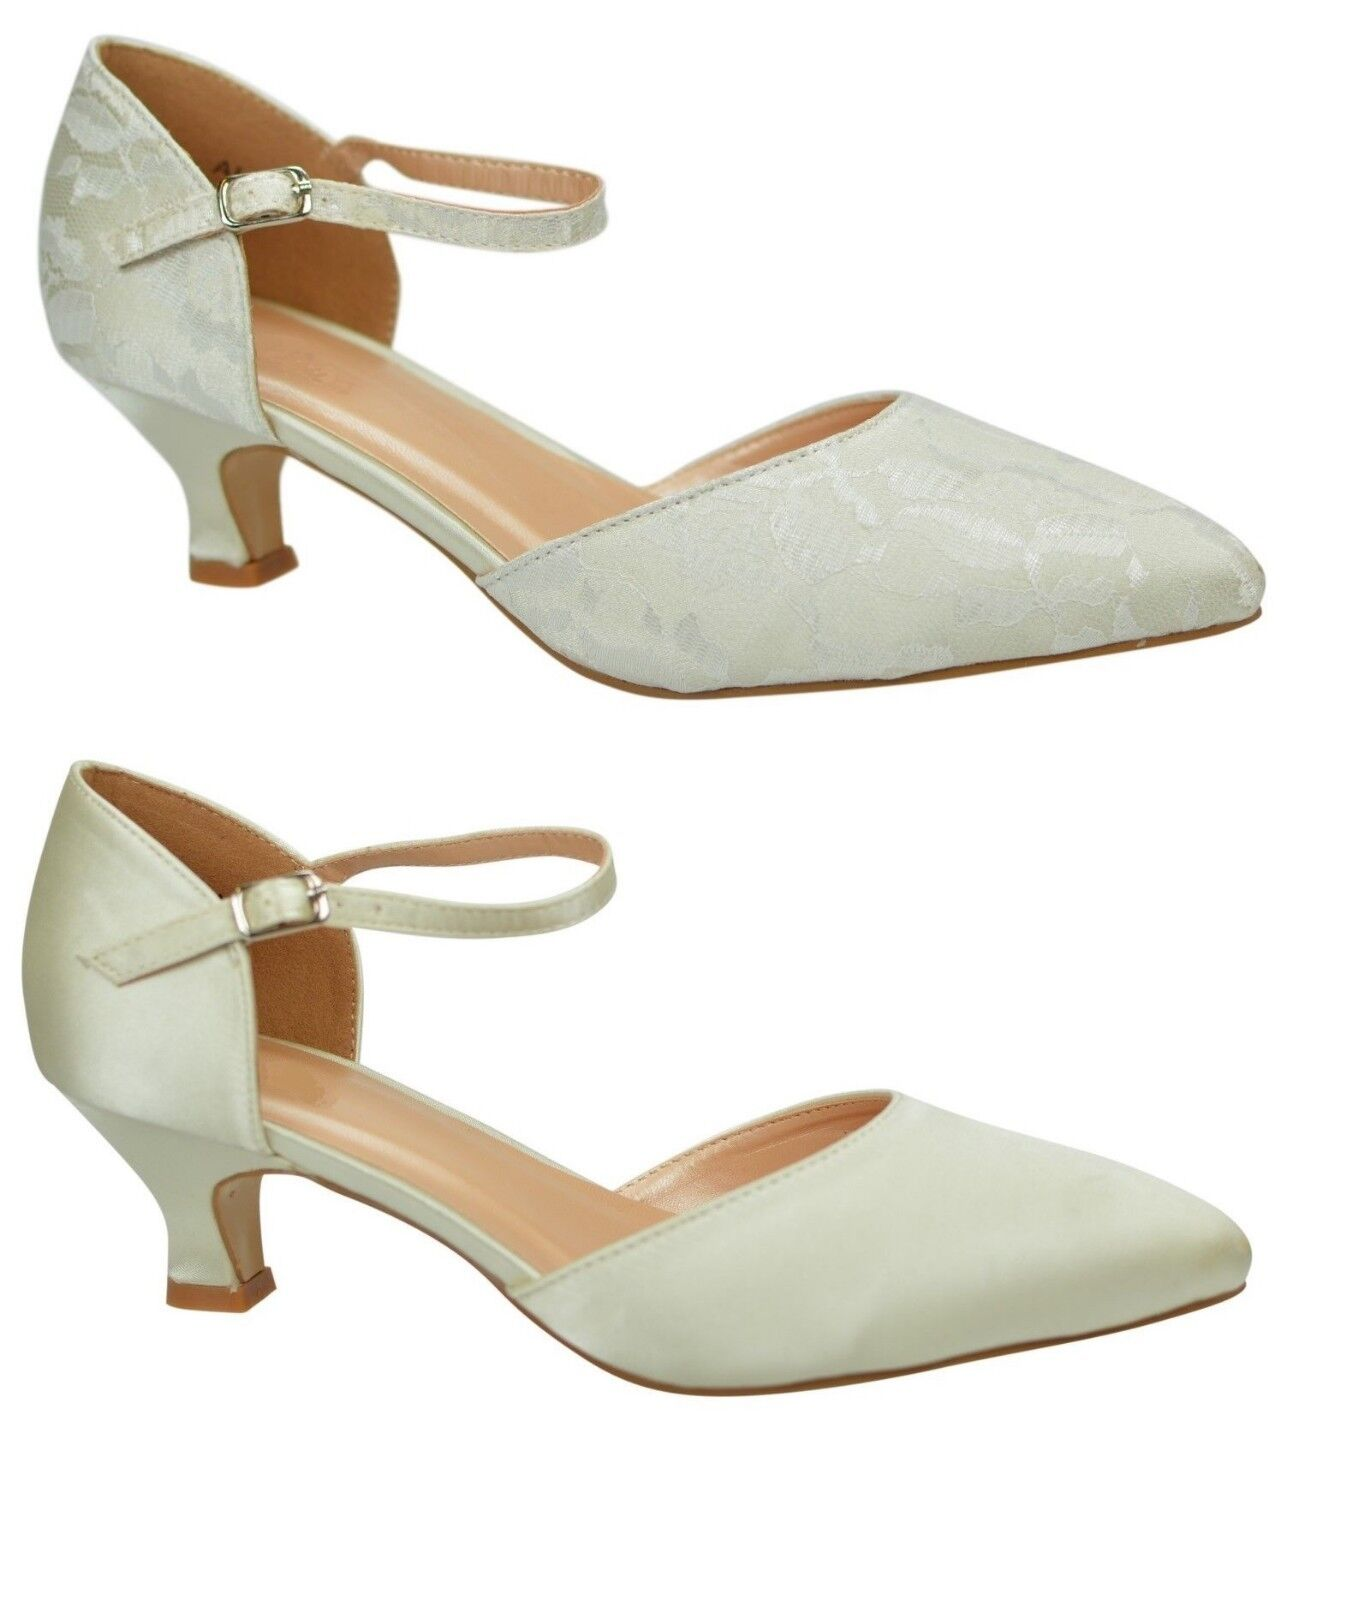 Ivory Wedding shoes Low Heel Satin Or Lace Ankle Strap Court Size 3 - 9 UK